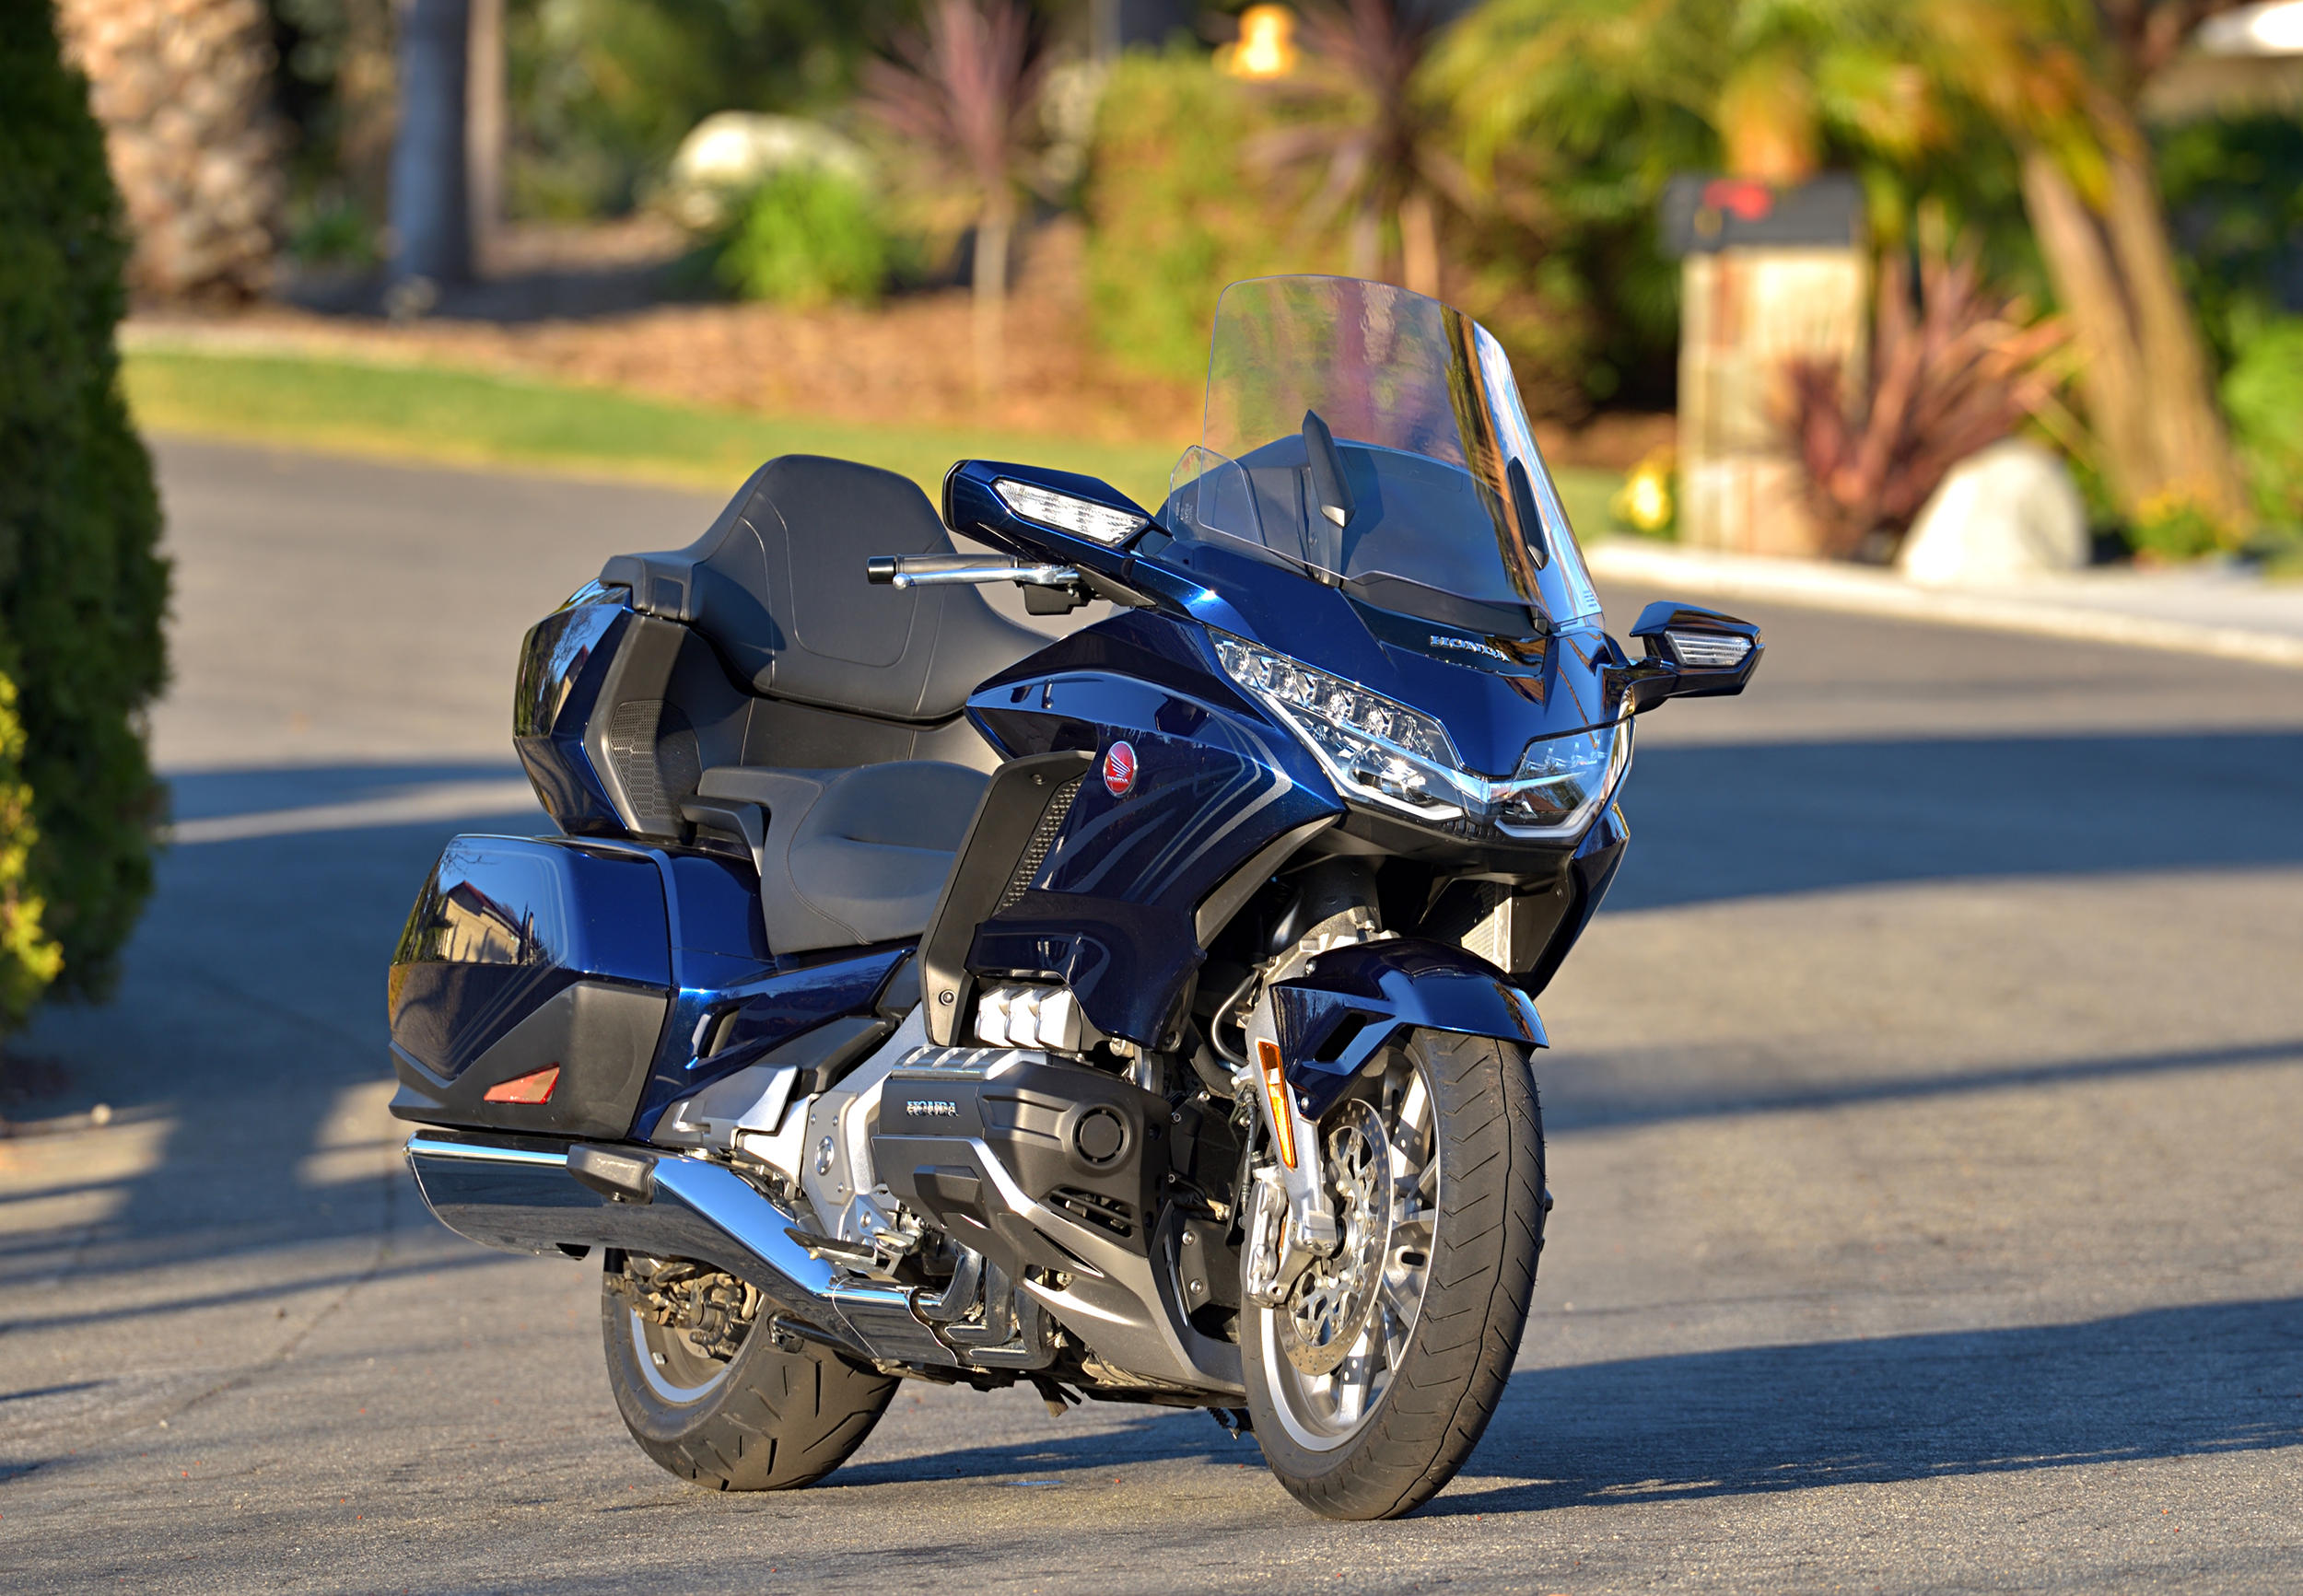 2018 Honda Gold Wing Tour: MD Ride Review – Introduction